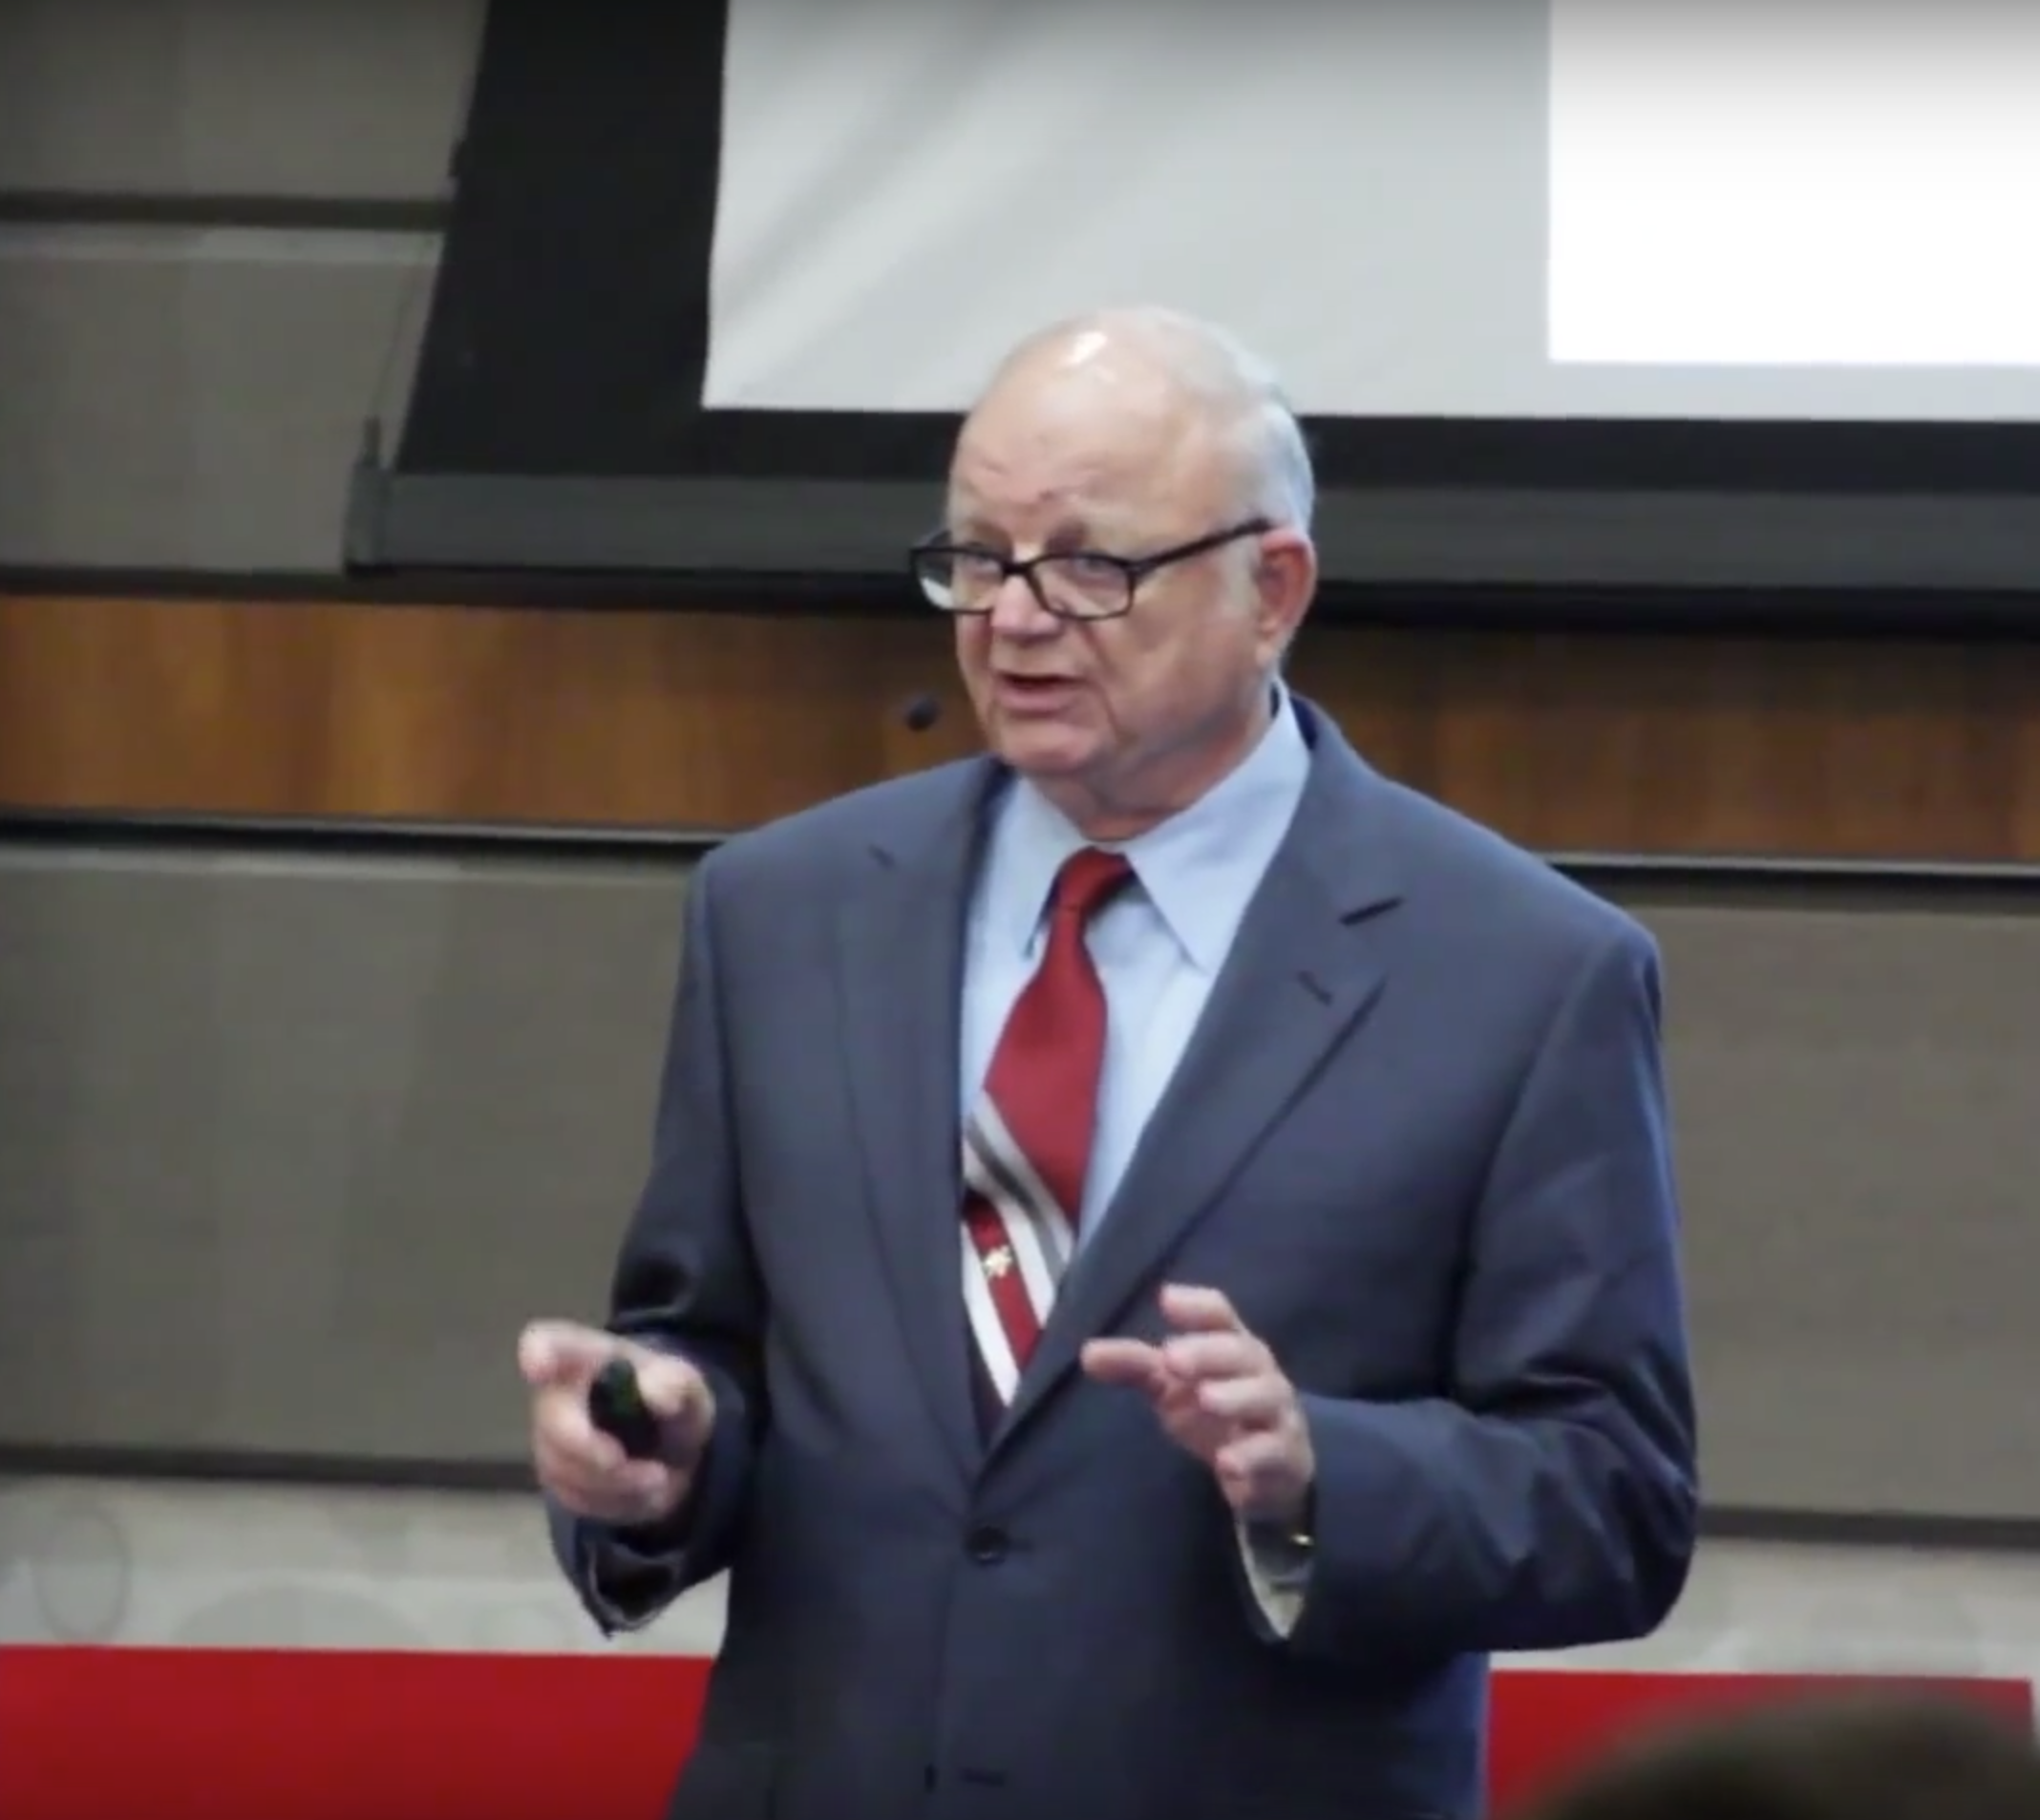 William Klemm giving a TEDx Talk